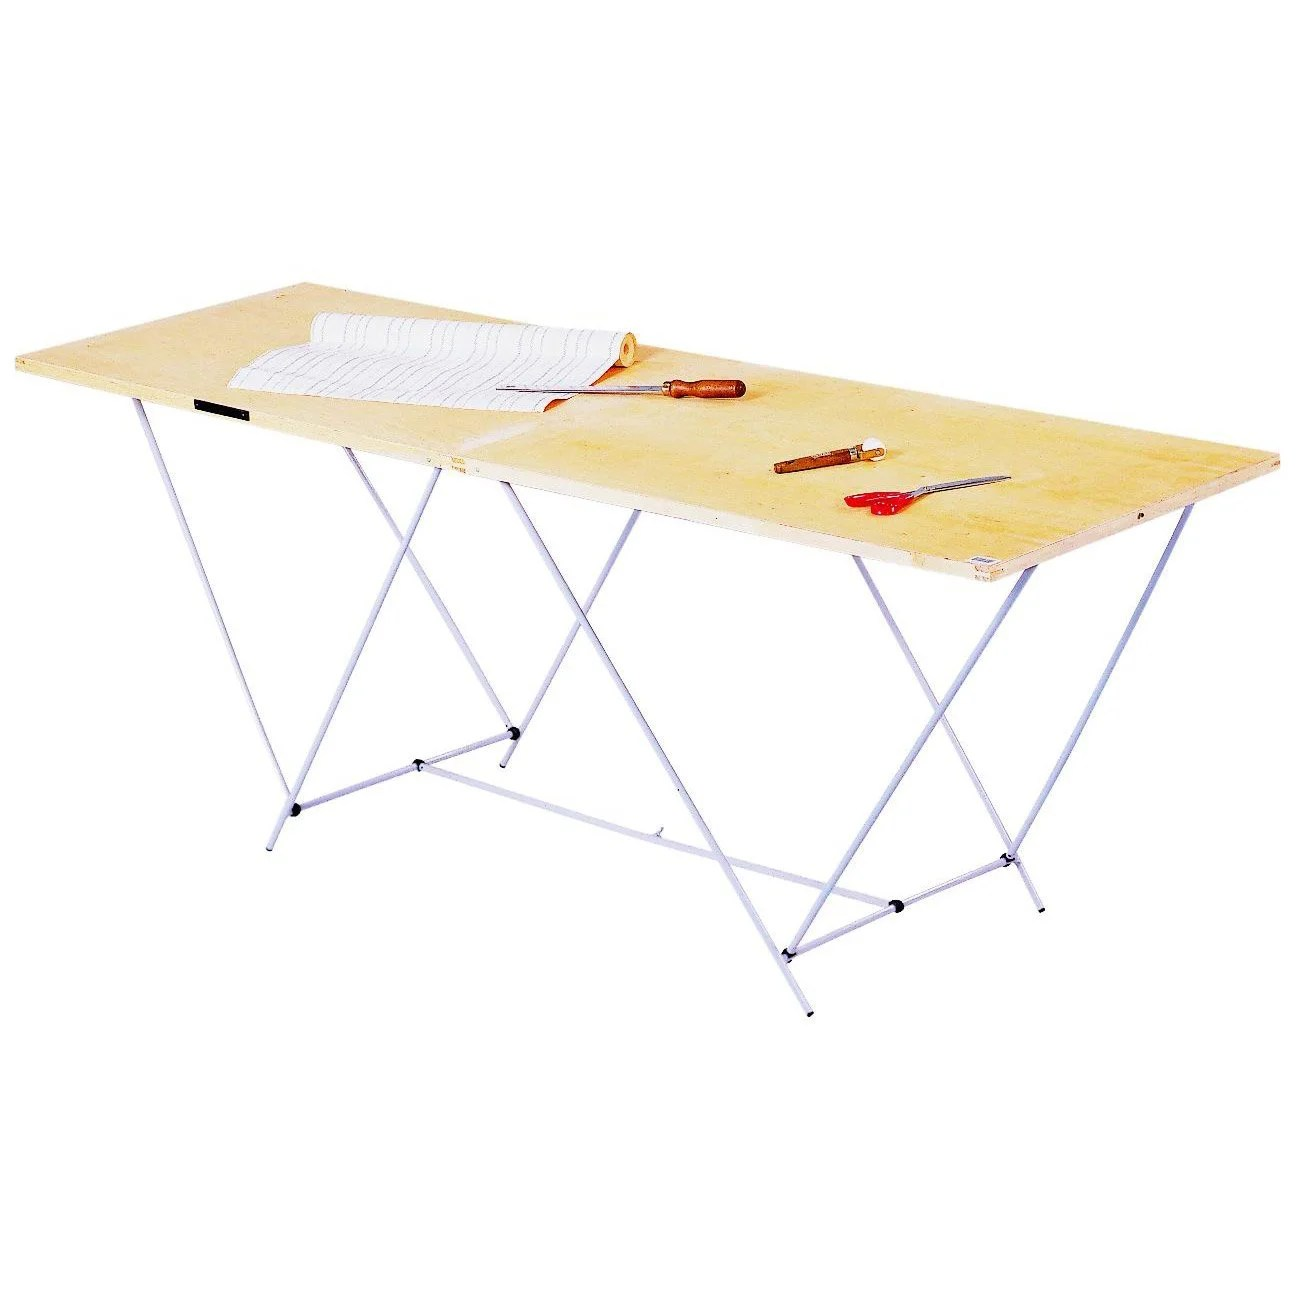 Table à Tapisser Brico Depot Table à Tapisser Pliante Ocai 60 Cm X 2 M